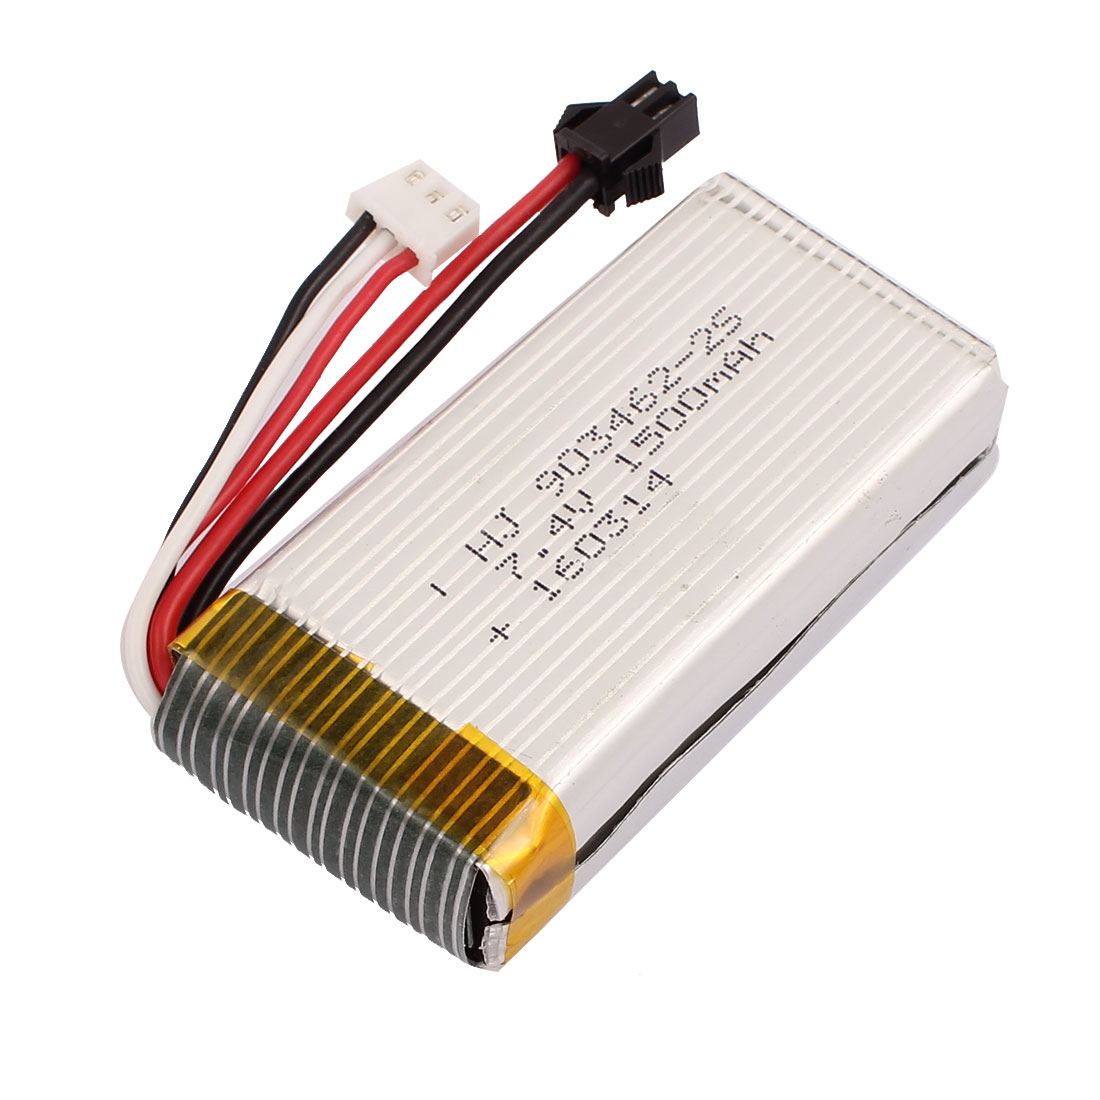 7.4V 1500mAh Charging Lithium Polymer Li-po Battery SM-2P XH-3P Connector for RC Airplane Aircraft